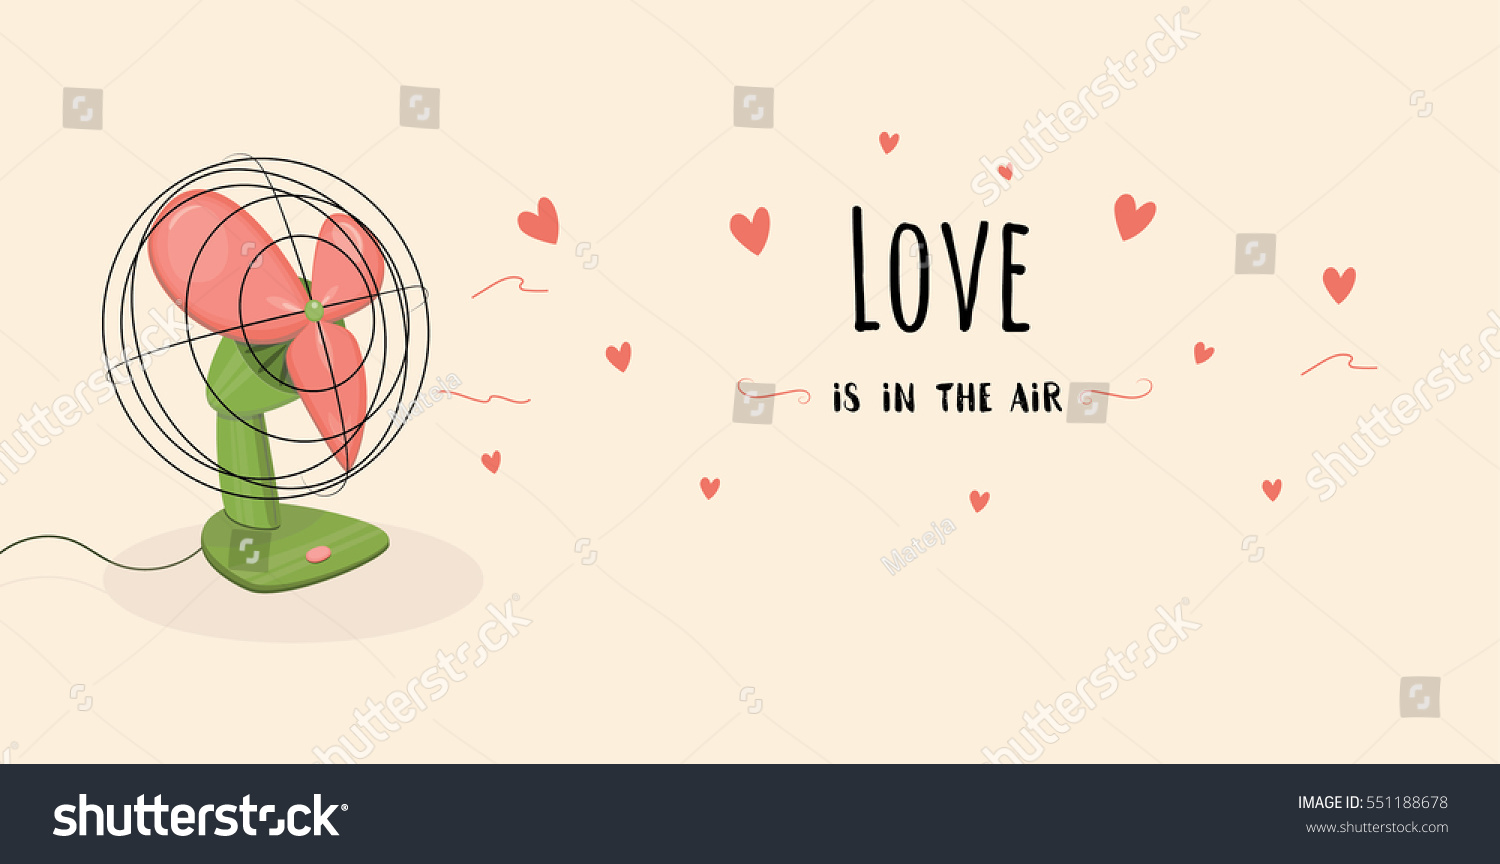 Valentines Day Love Air Inspirational Illustration Stock Vector